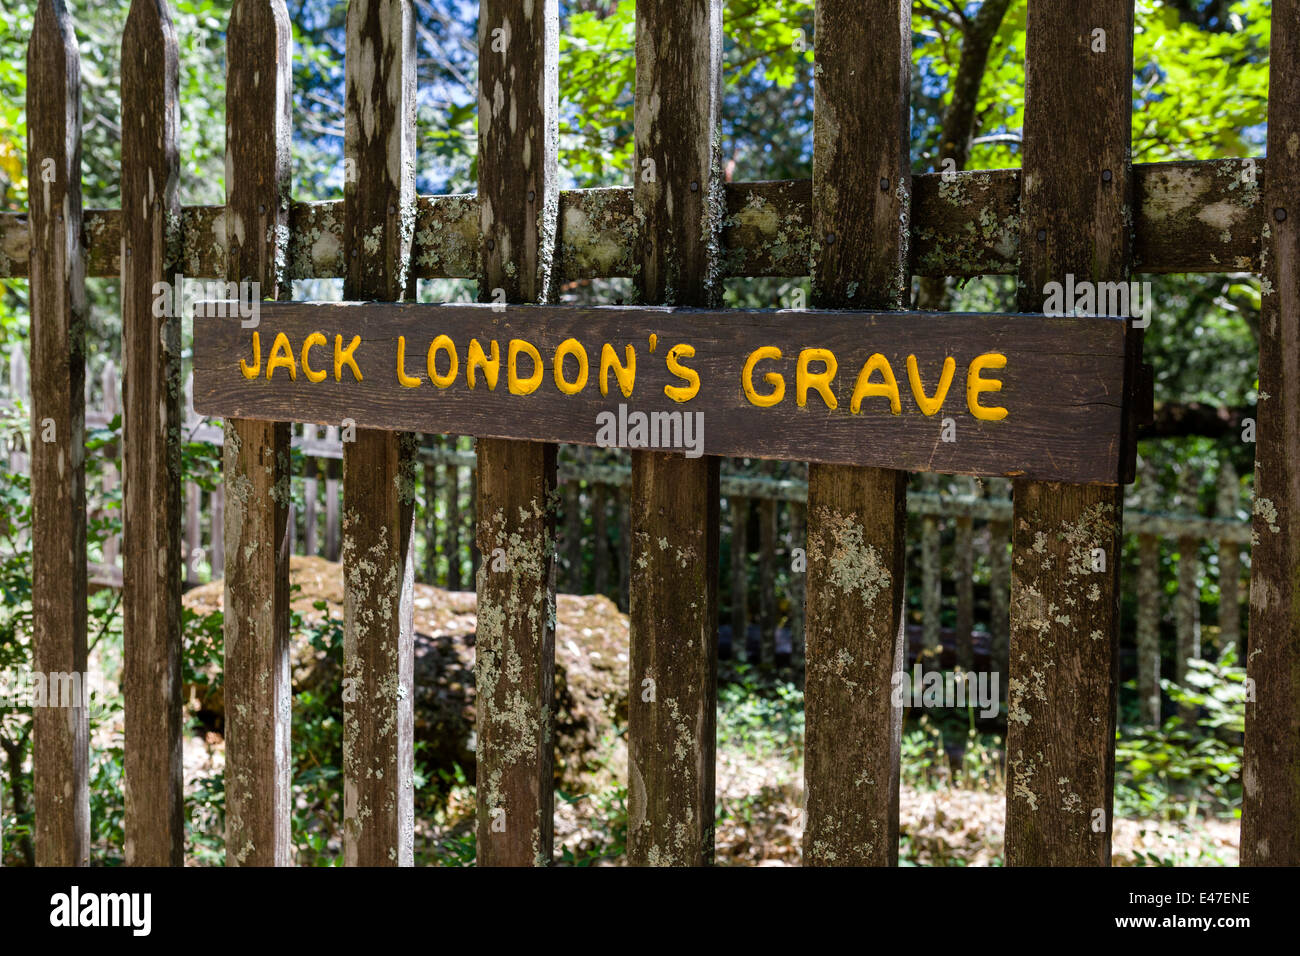 Grave of the writer Jack London, Jack London State Historic Park, Glen Ellen, California, USA - Stock Image